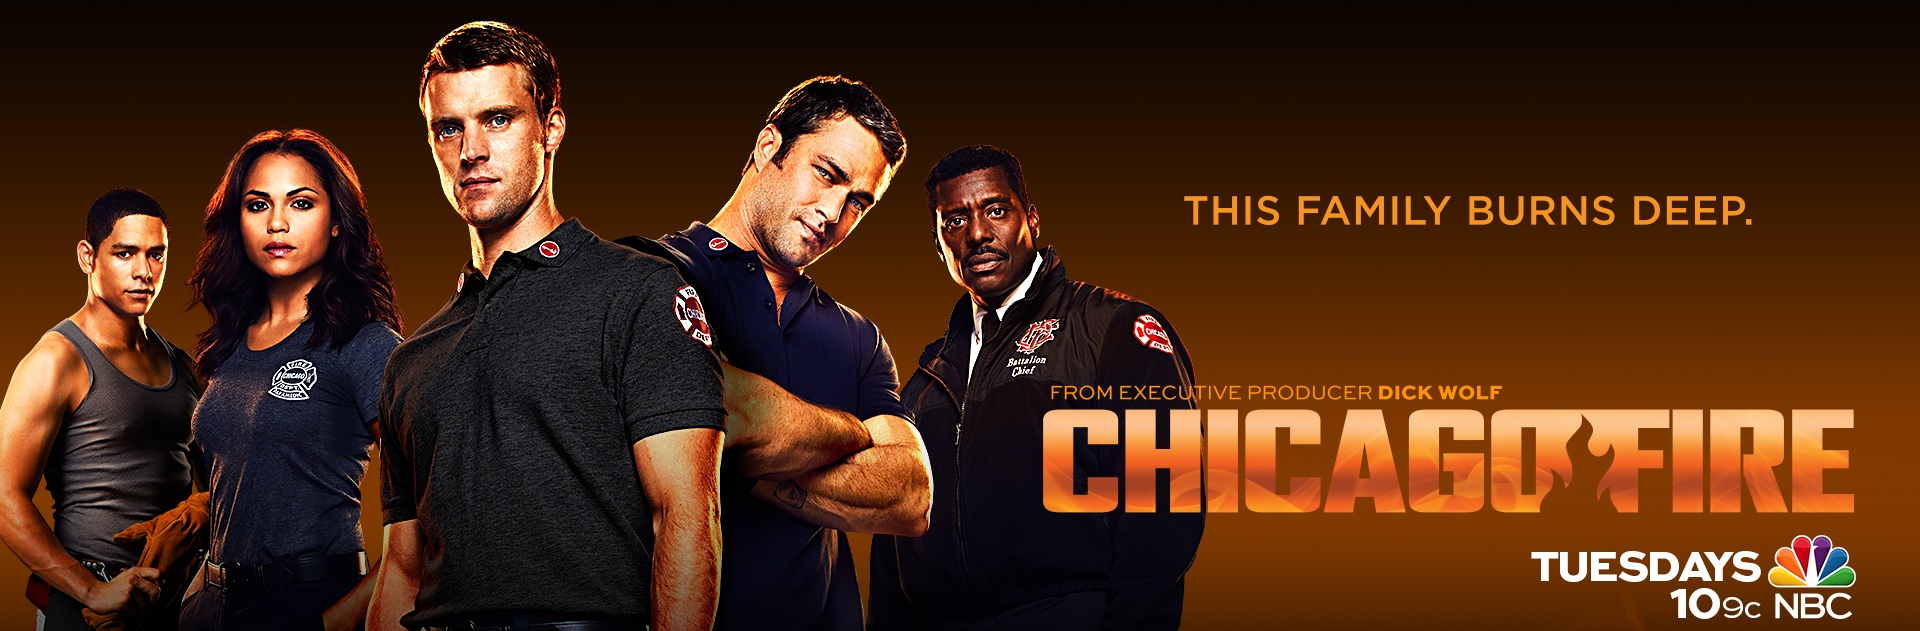 NBC-Chicago-Fire-S3_DKA_horz_post.jpg